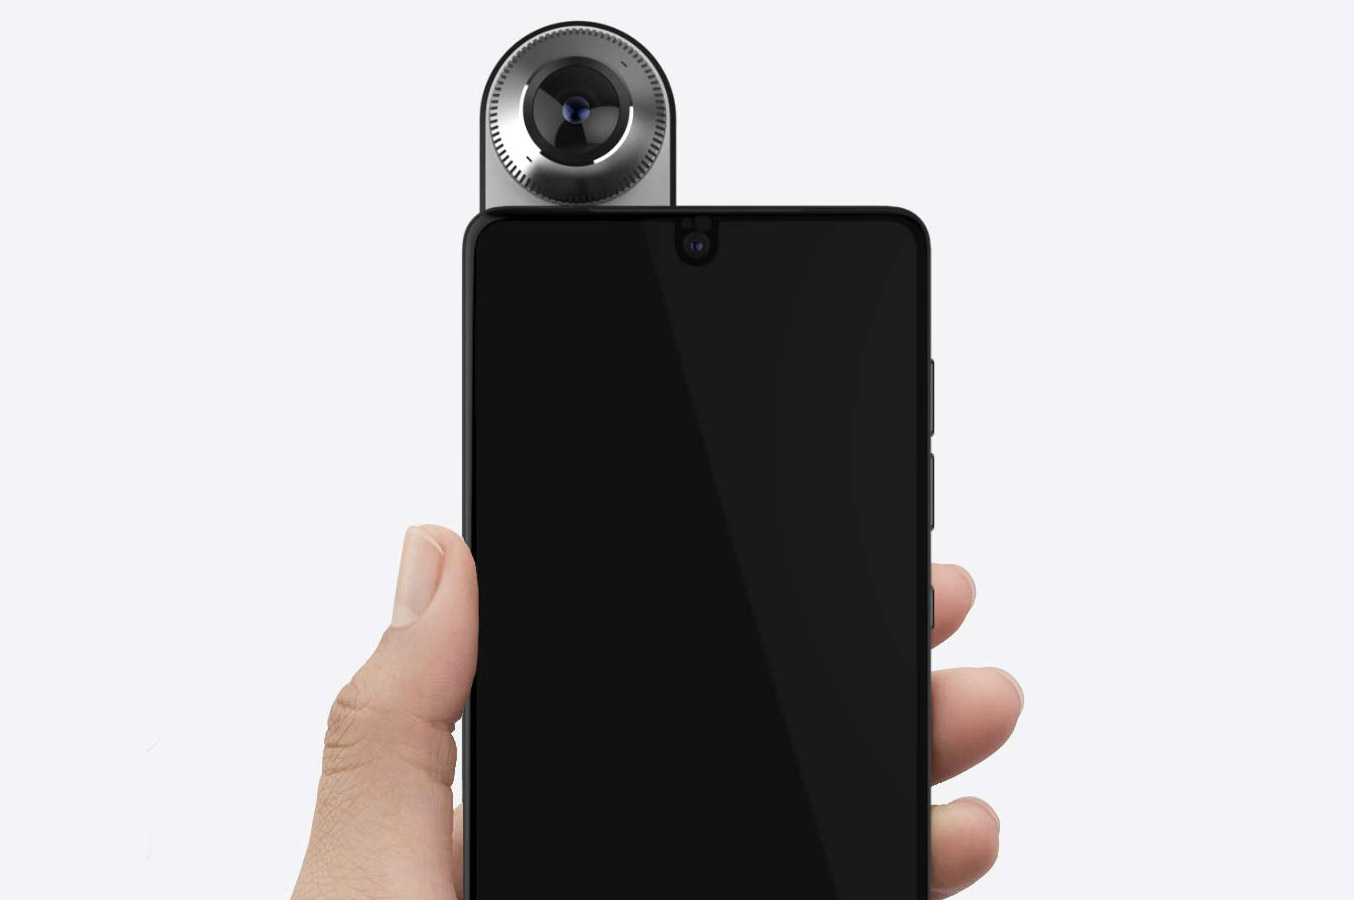 essential ph-1 360 camera